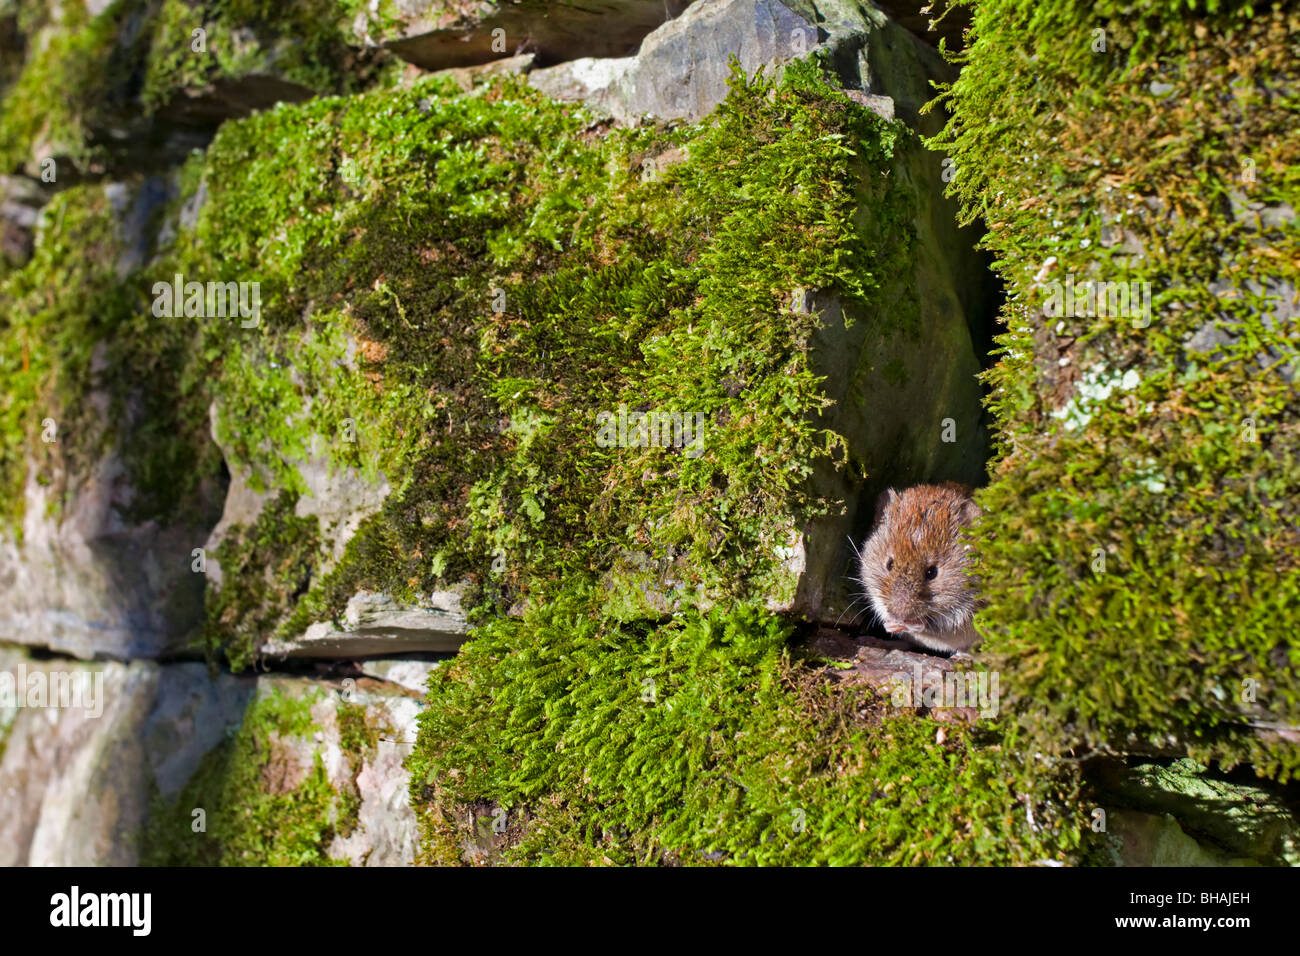 Bank Vole peeping out of stone wall - Stock Image